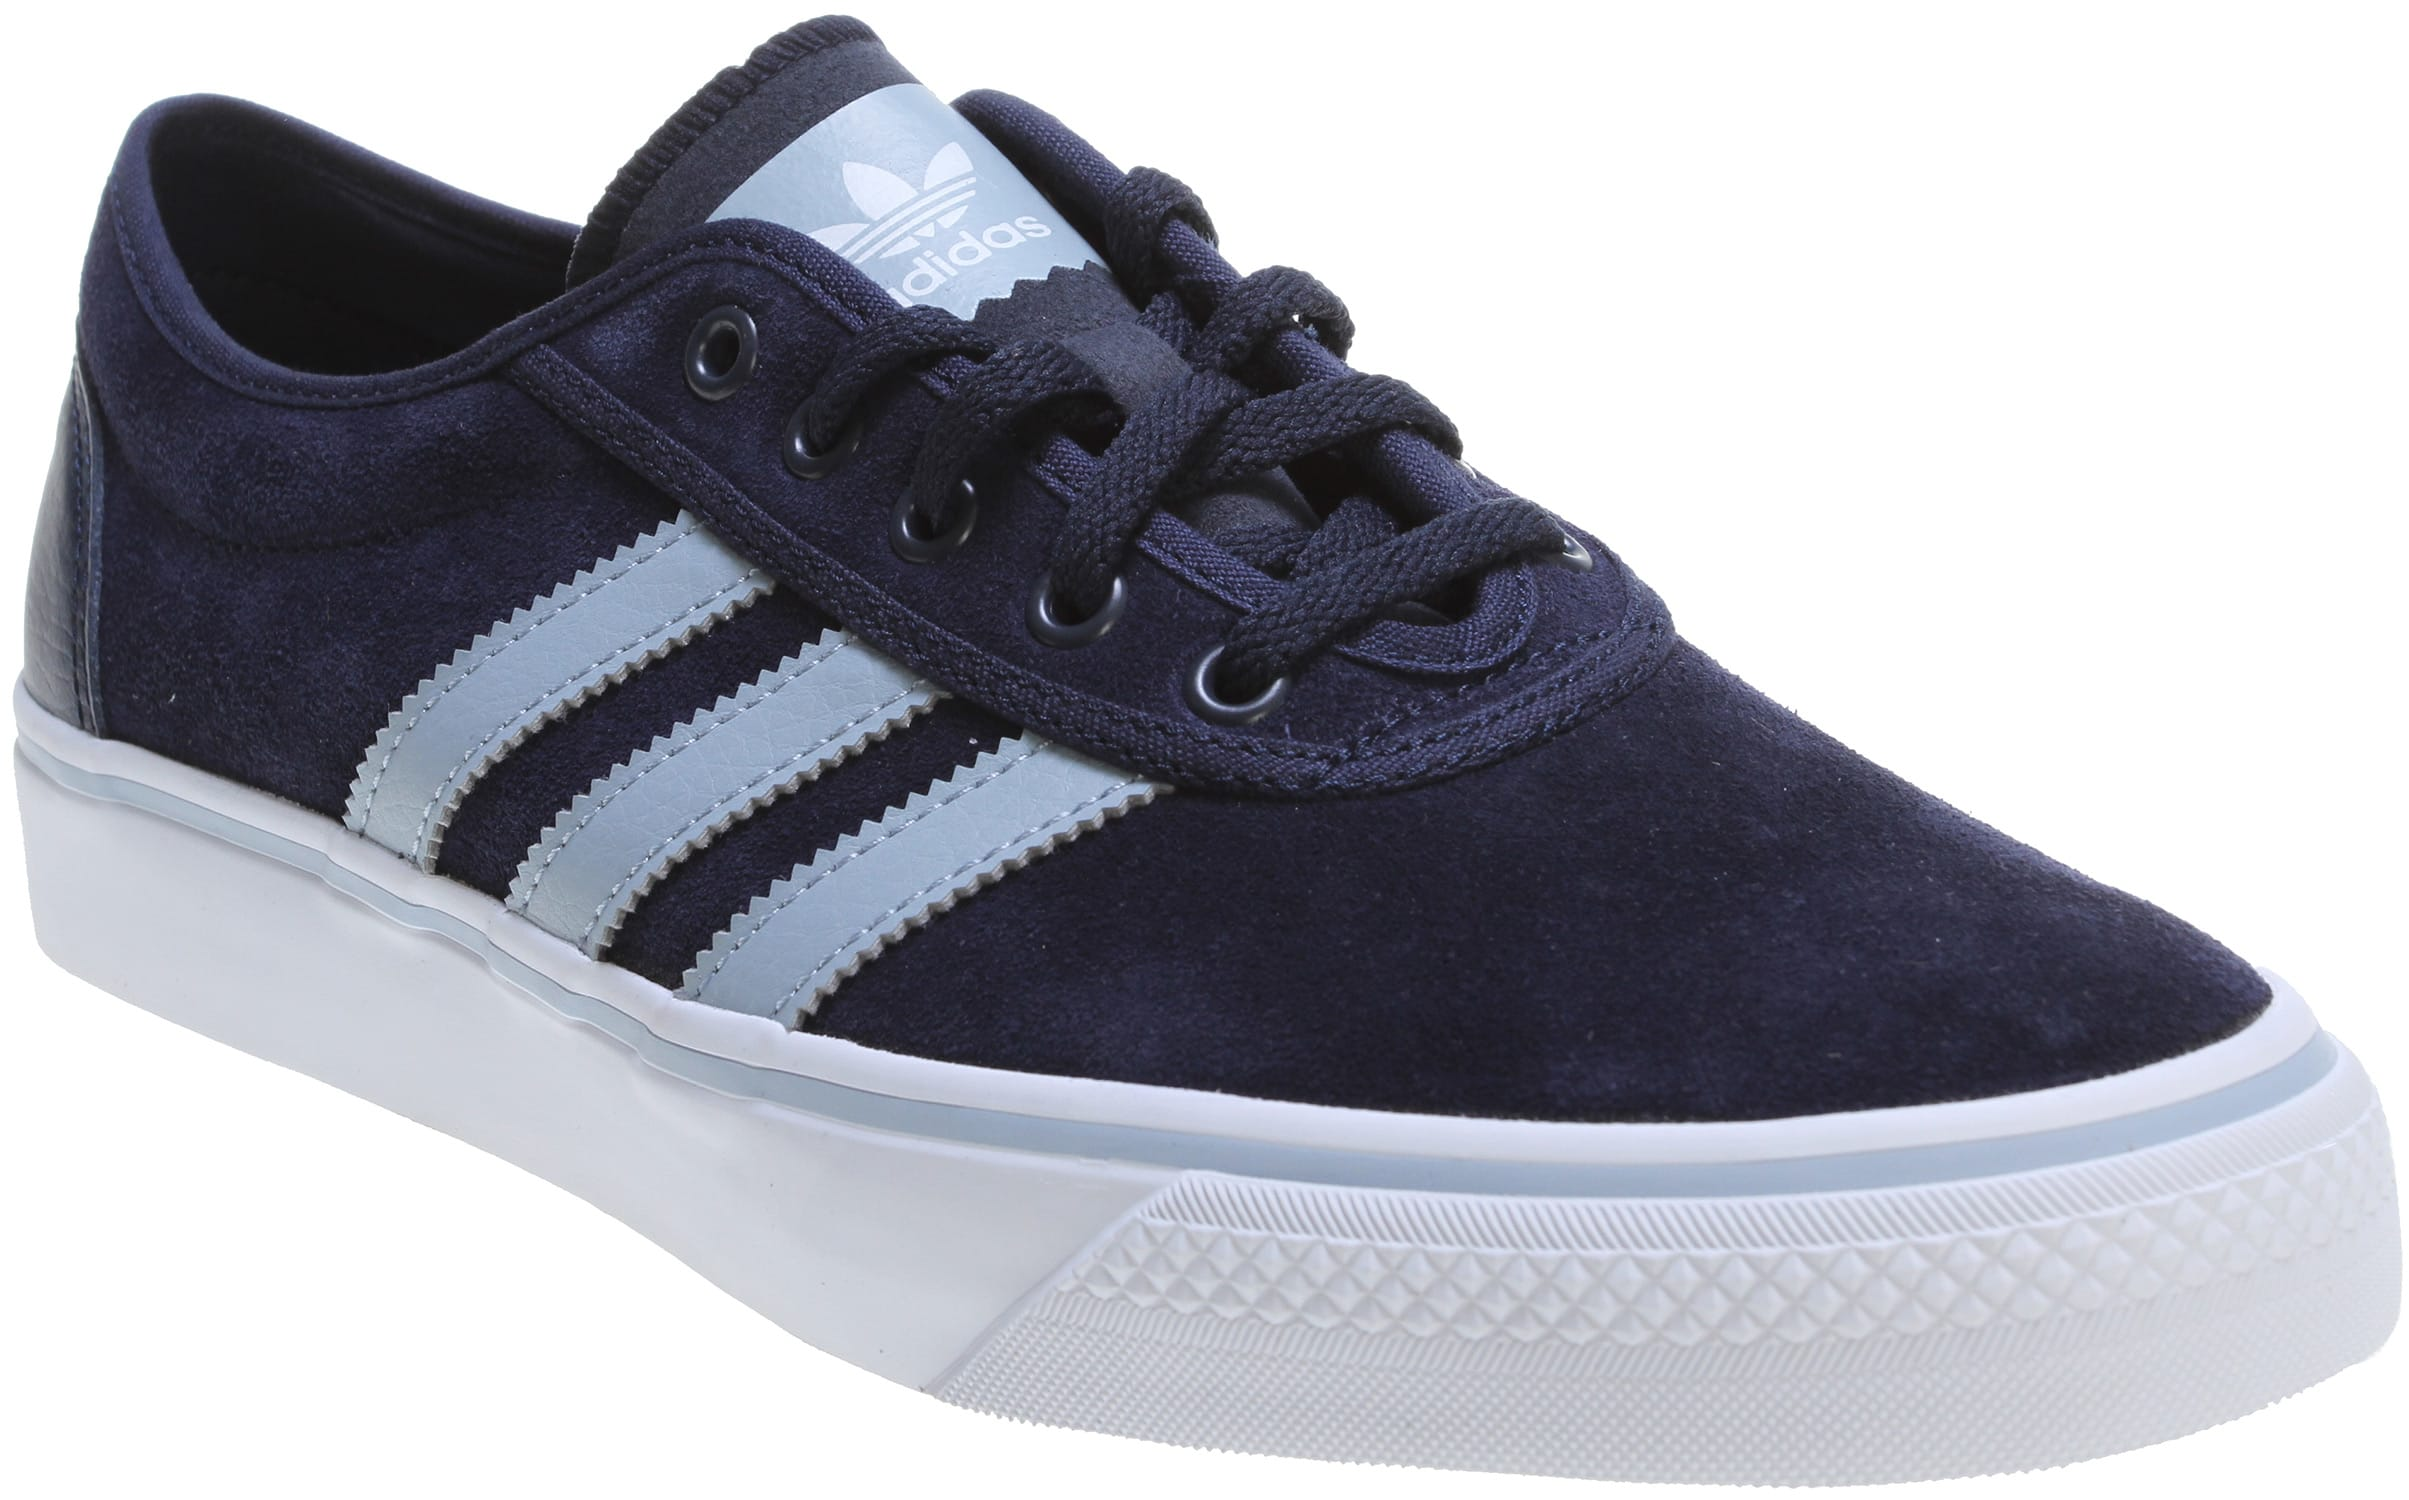 On Sale Adidas Adi-Ease Skate Shoes up to 50% off